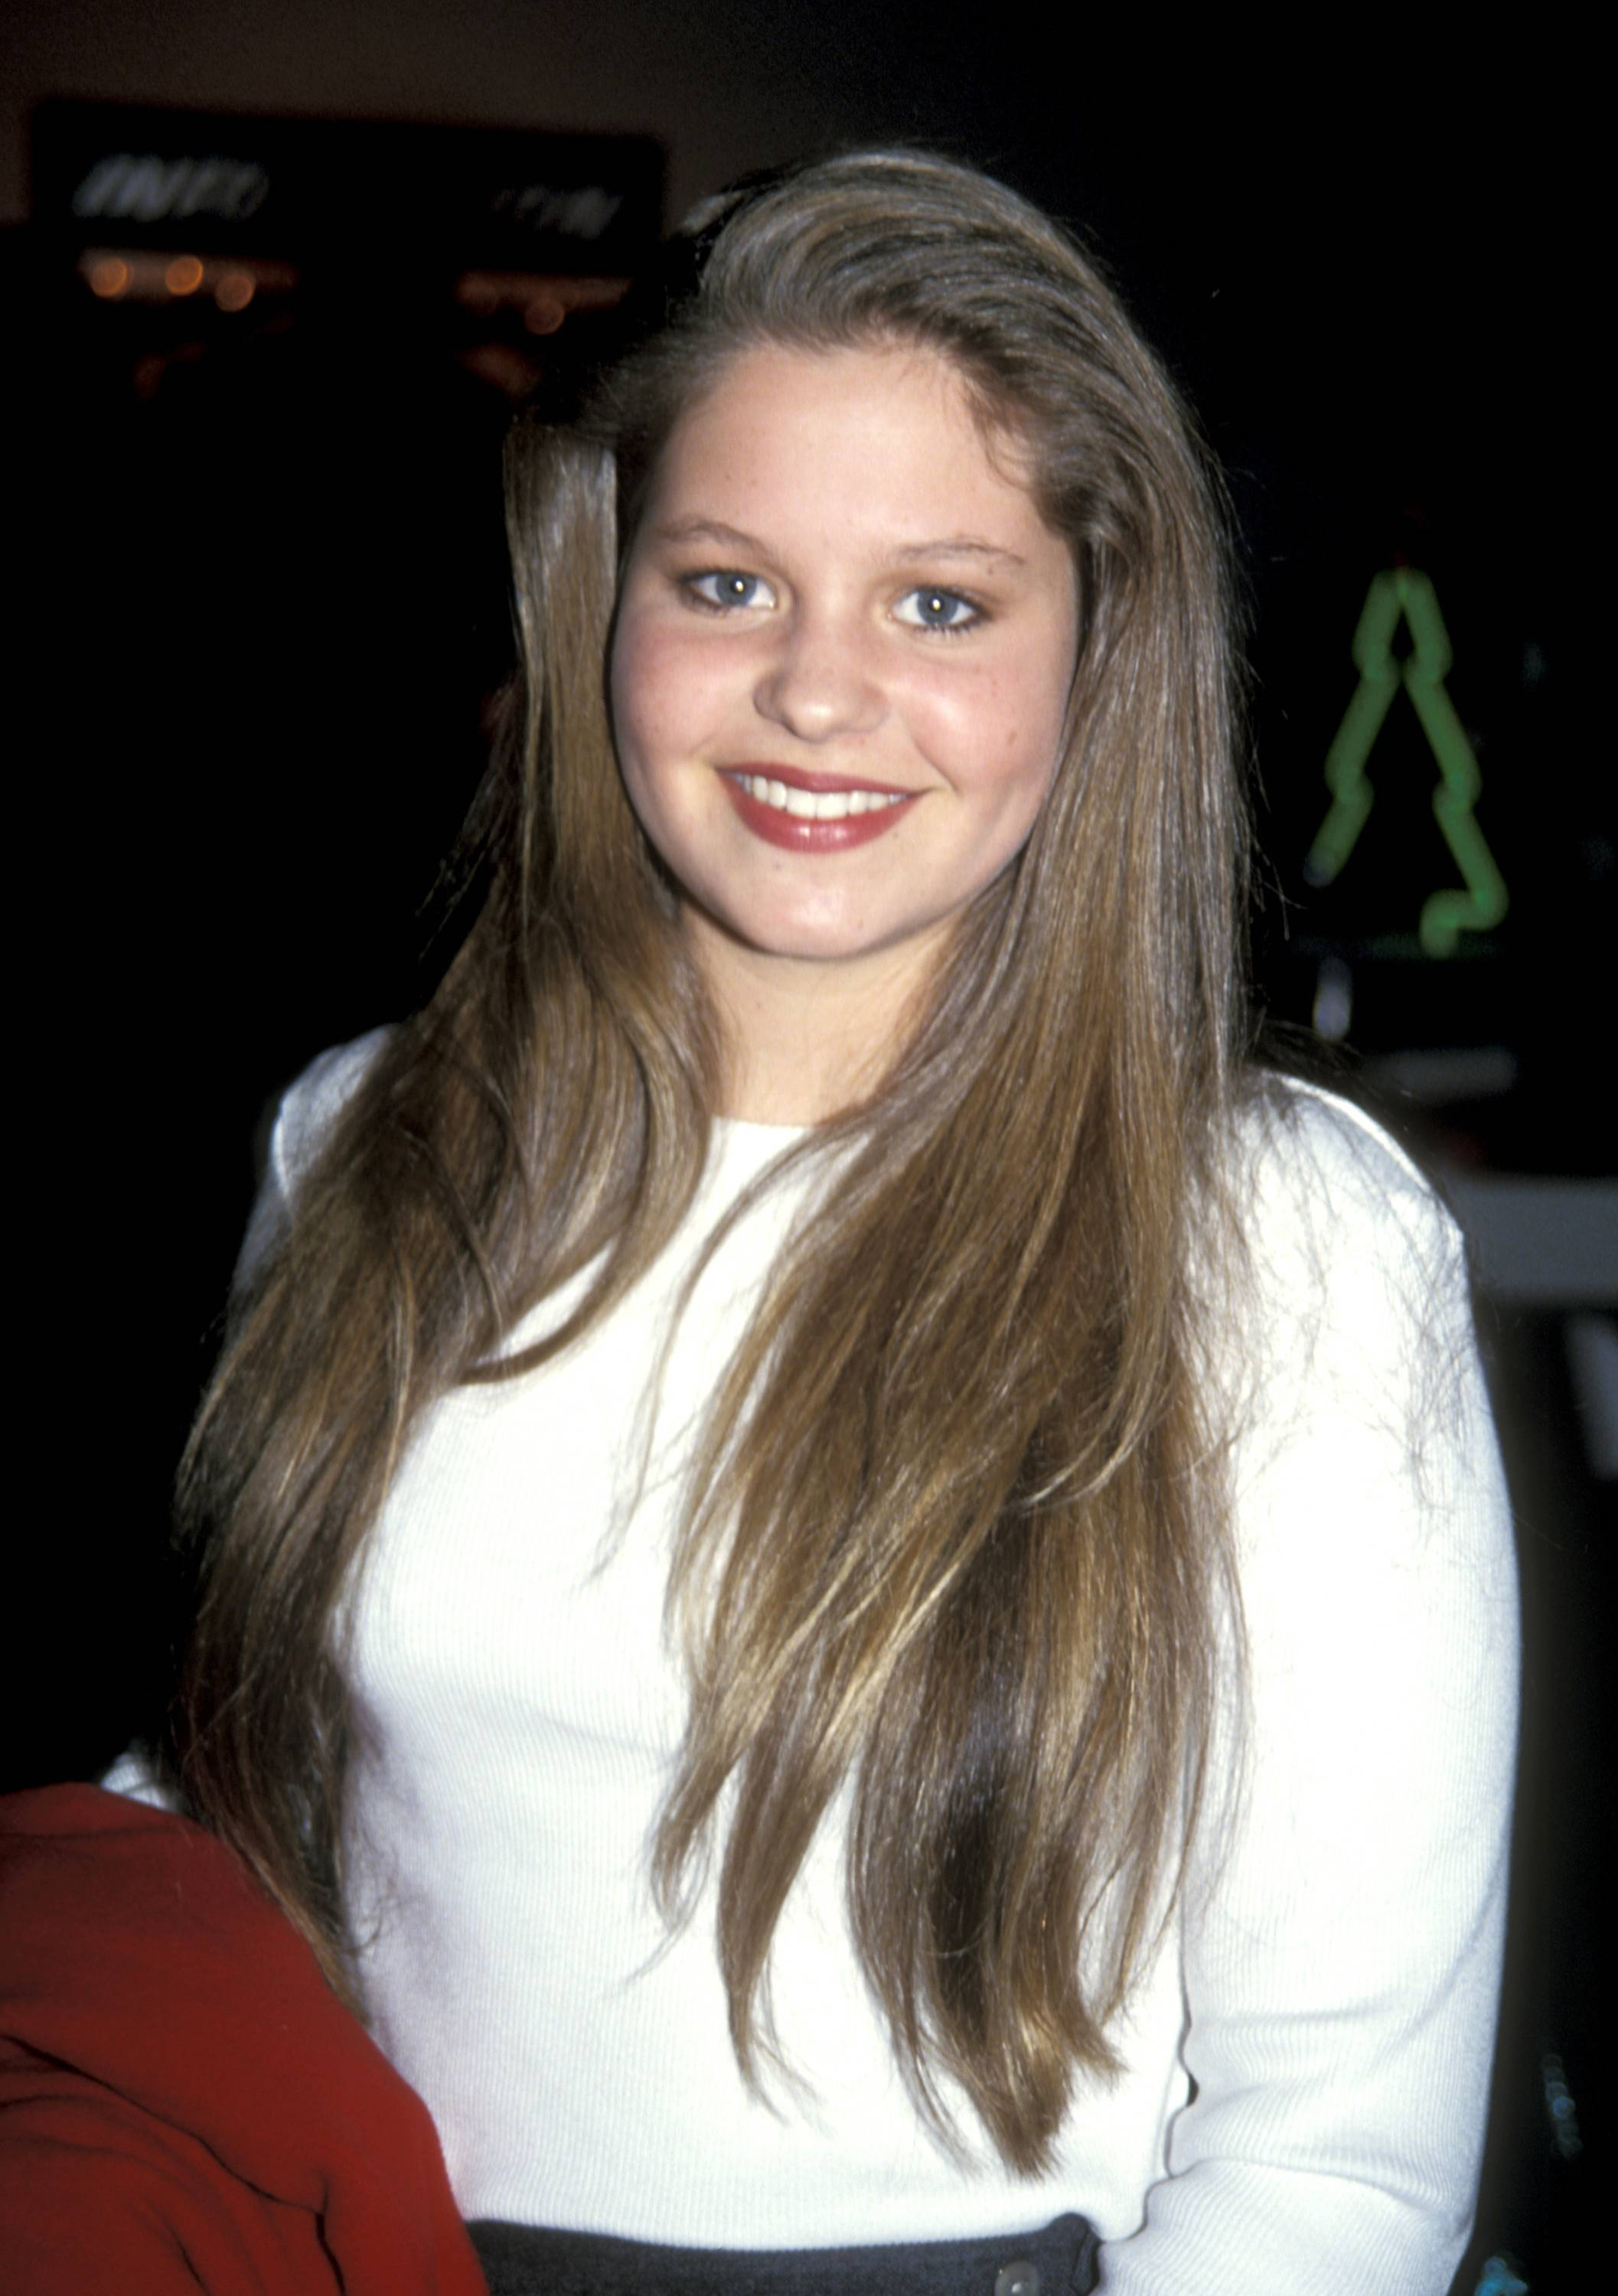 Candace Cameron as D.J. Tanner in Full House - (Photo: Ron Galella, Ltd./WireImage via Getty Images)